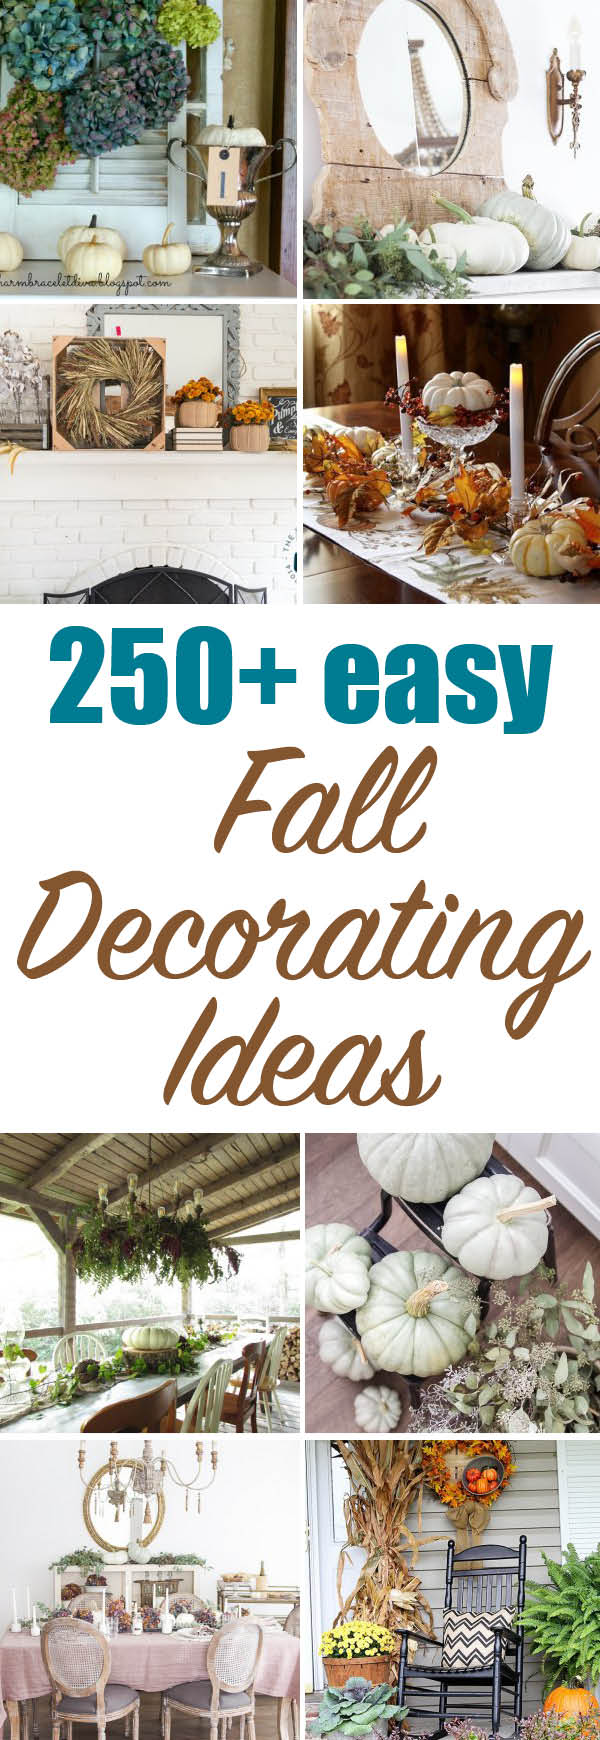 250+ lovely fall decorating ideas - I love them all!